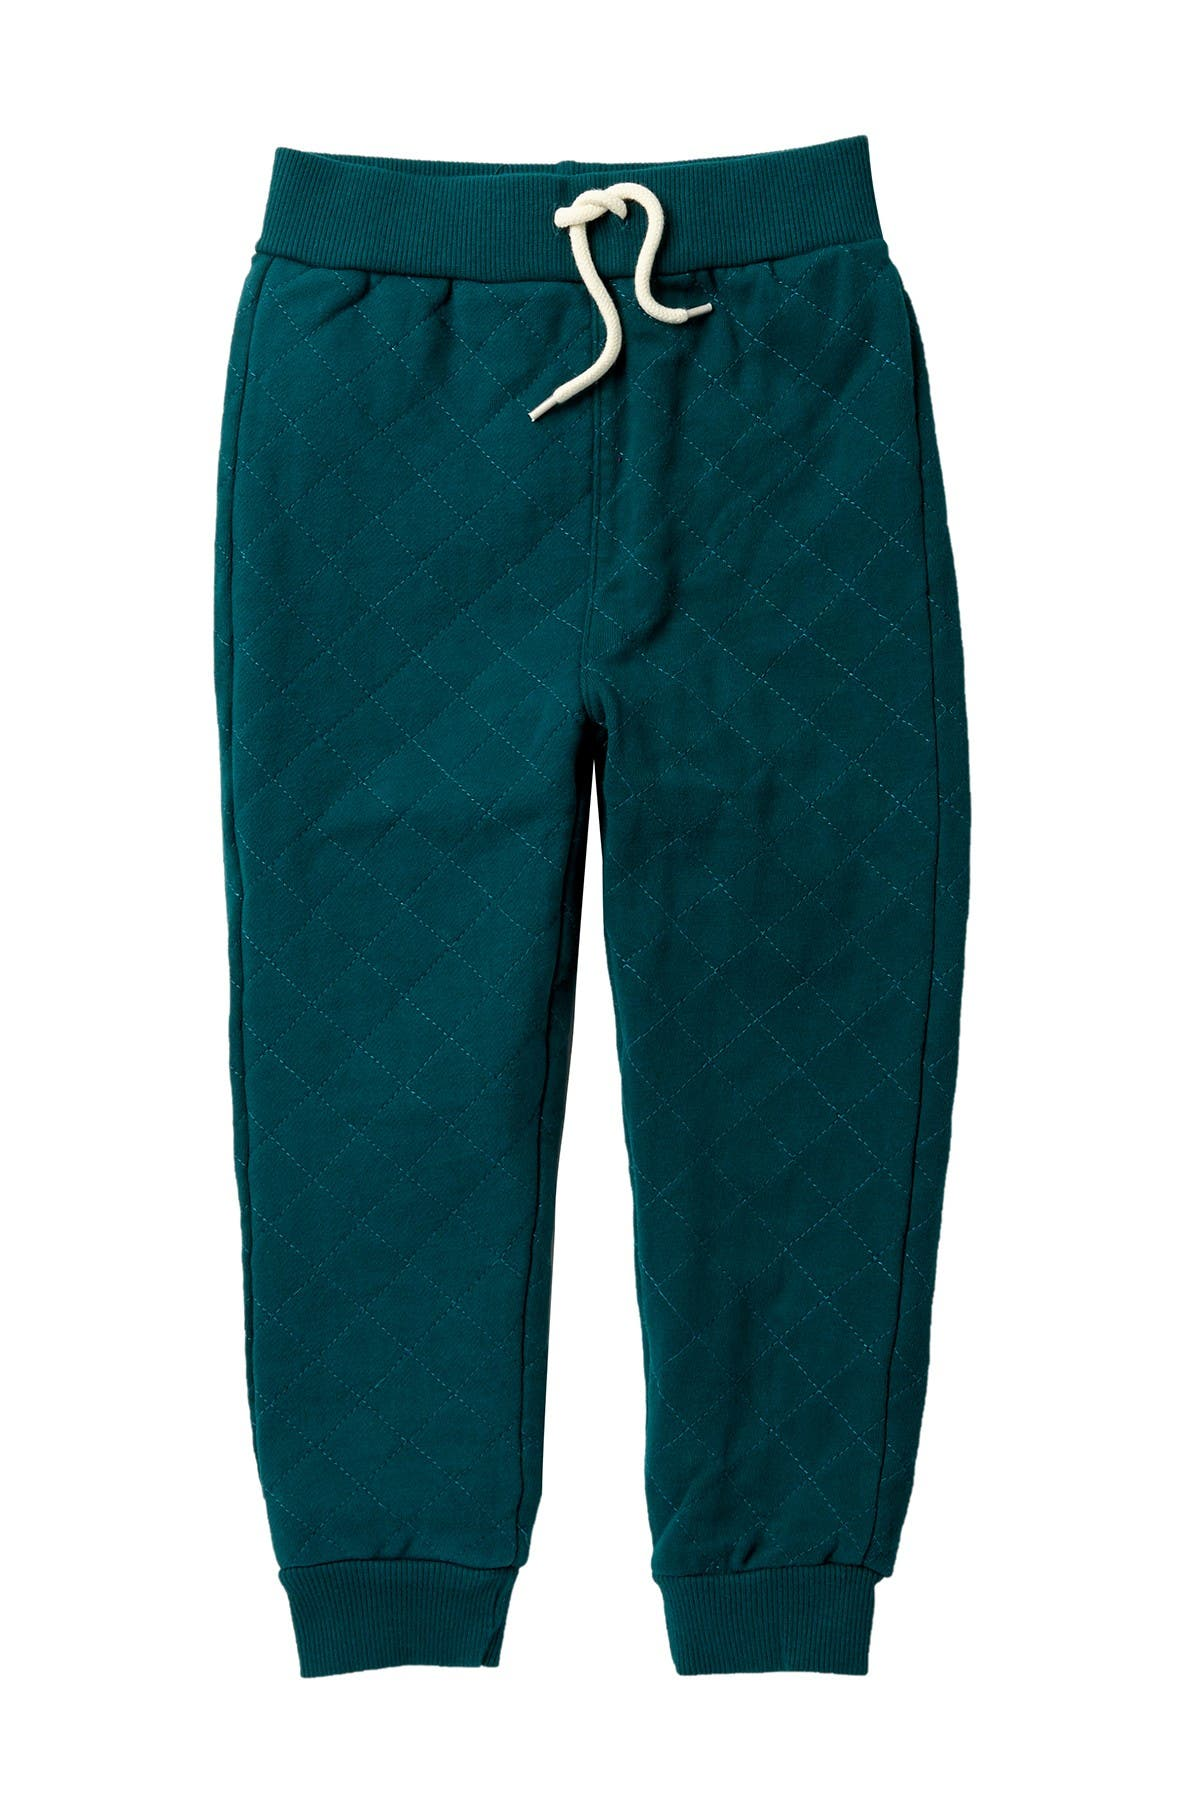 Image of Petit Lem Pull-On Knit Pants